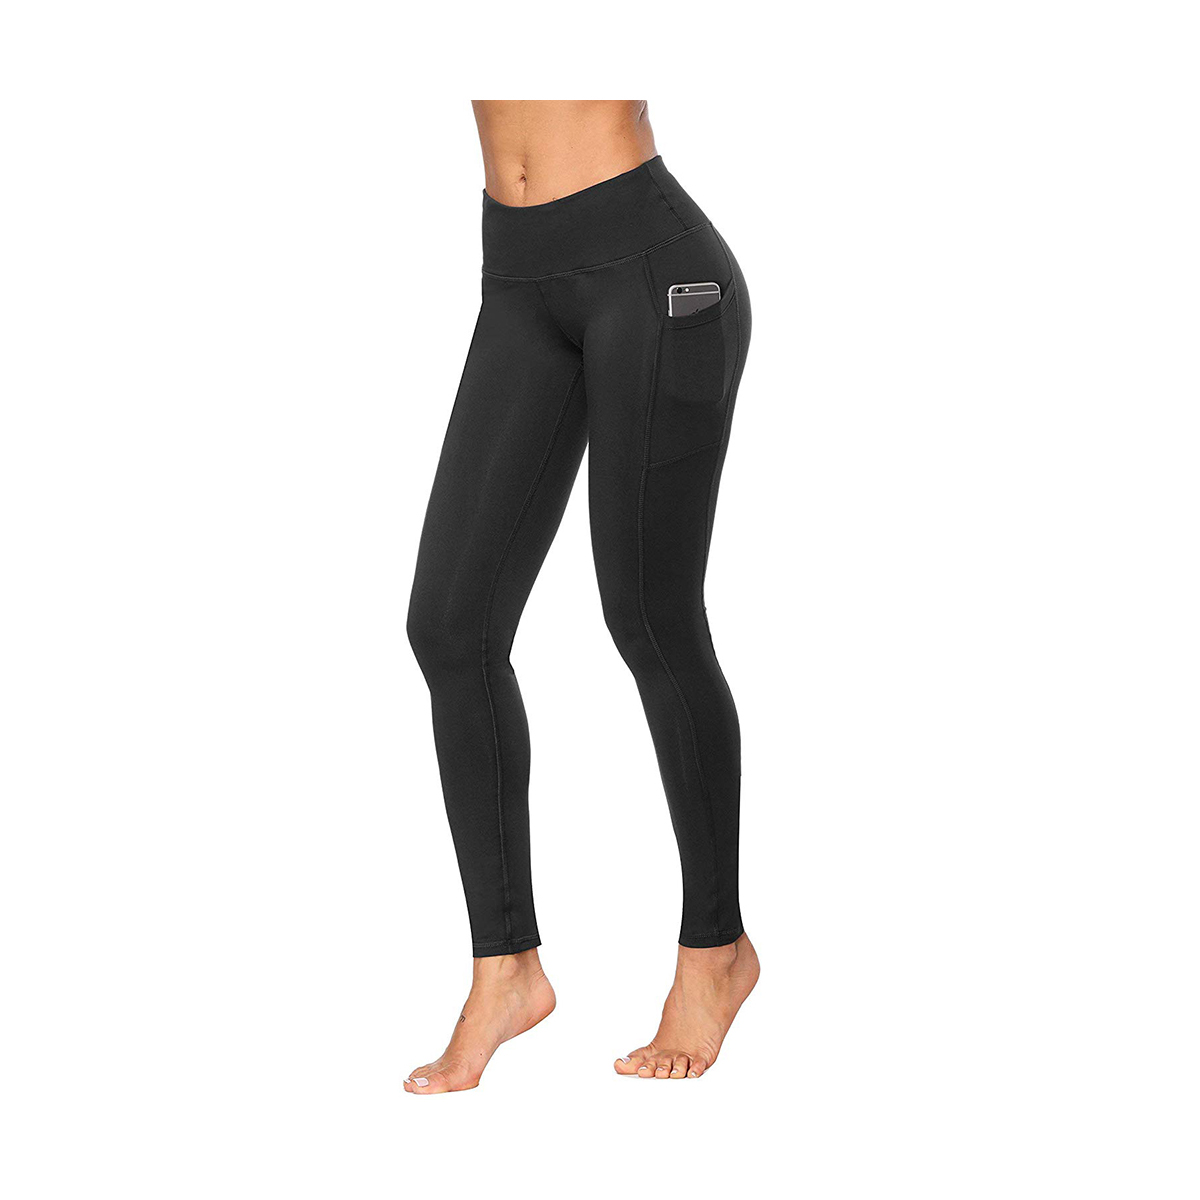 Best Option With Pockets: Fengbay High Waist Yoga Pants With Pockets